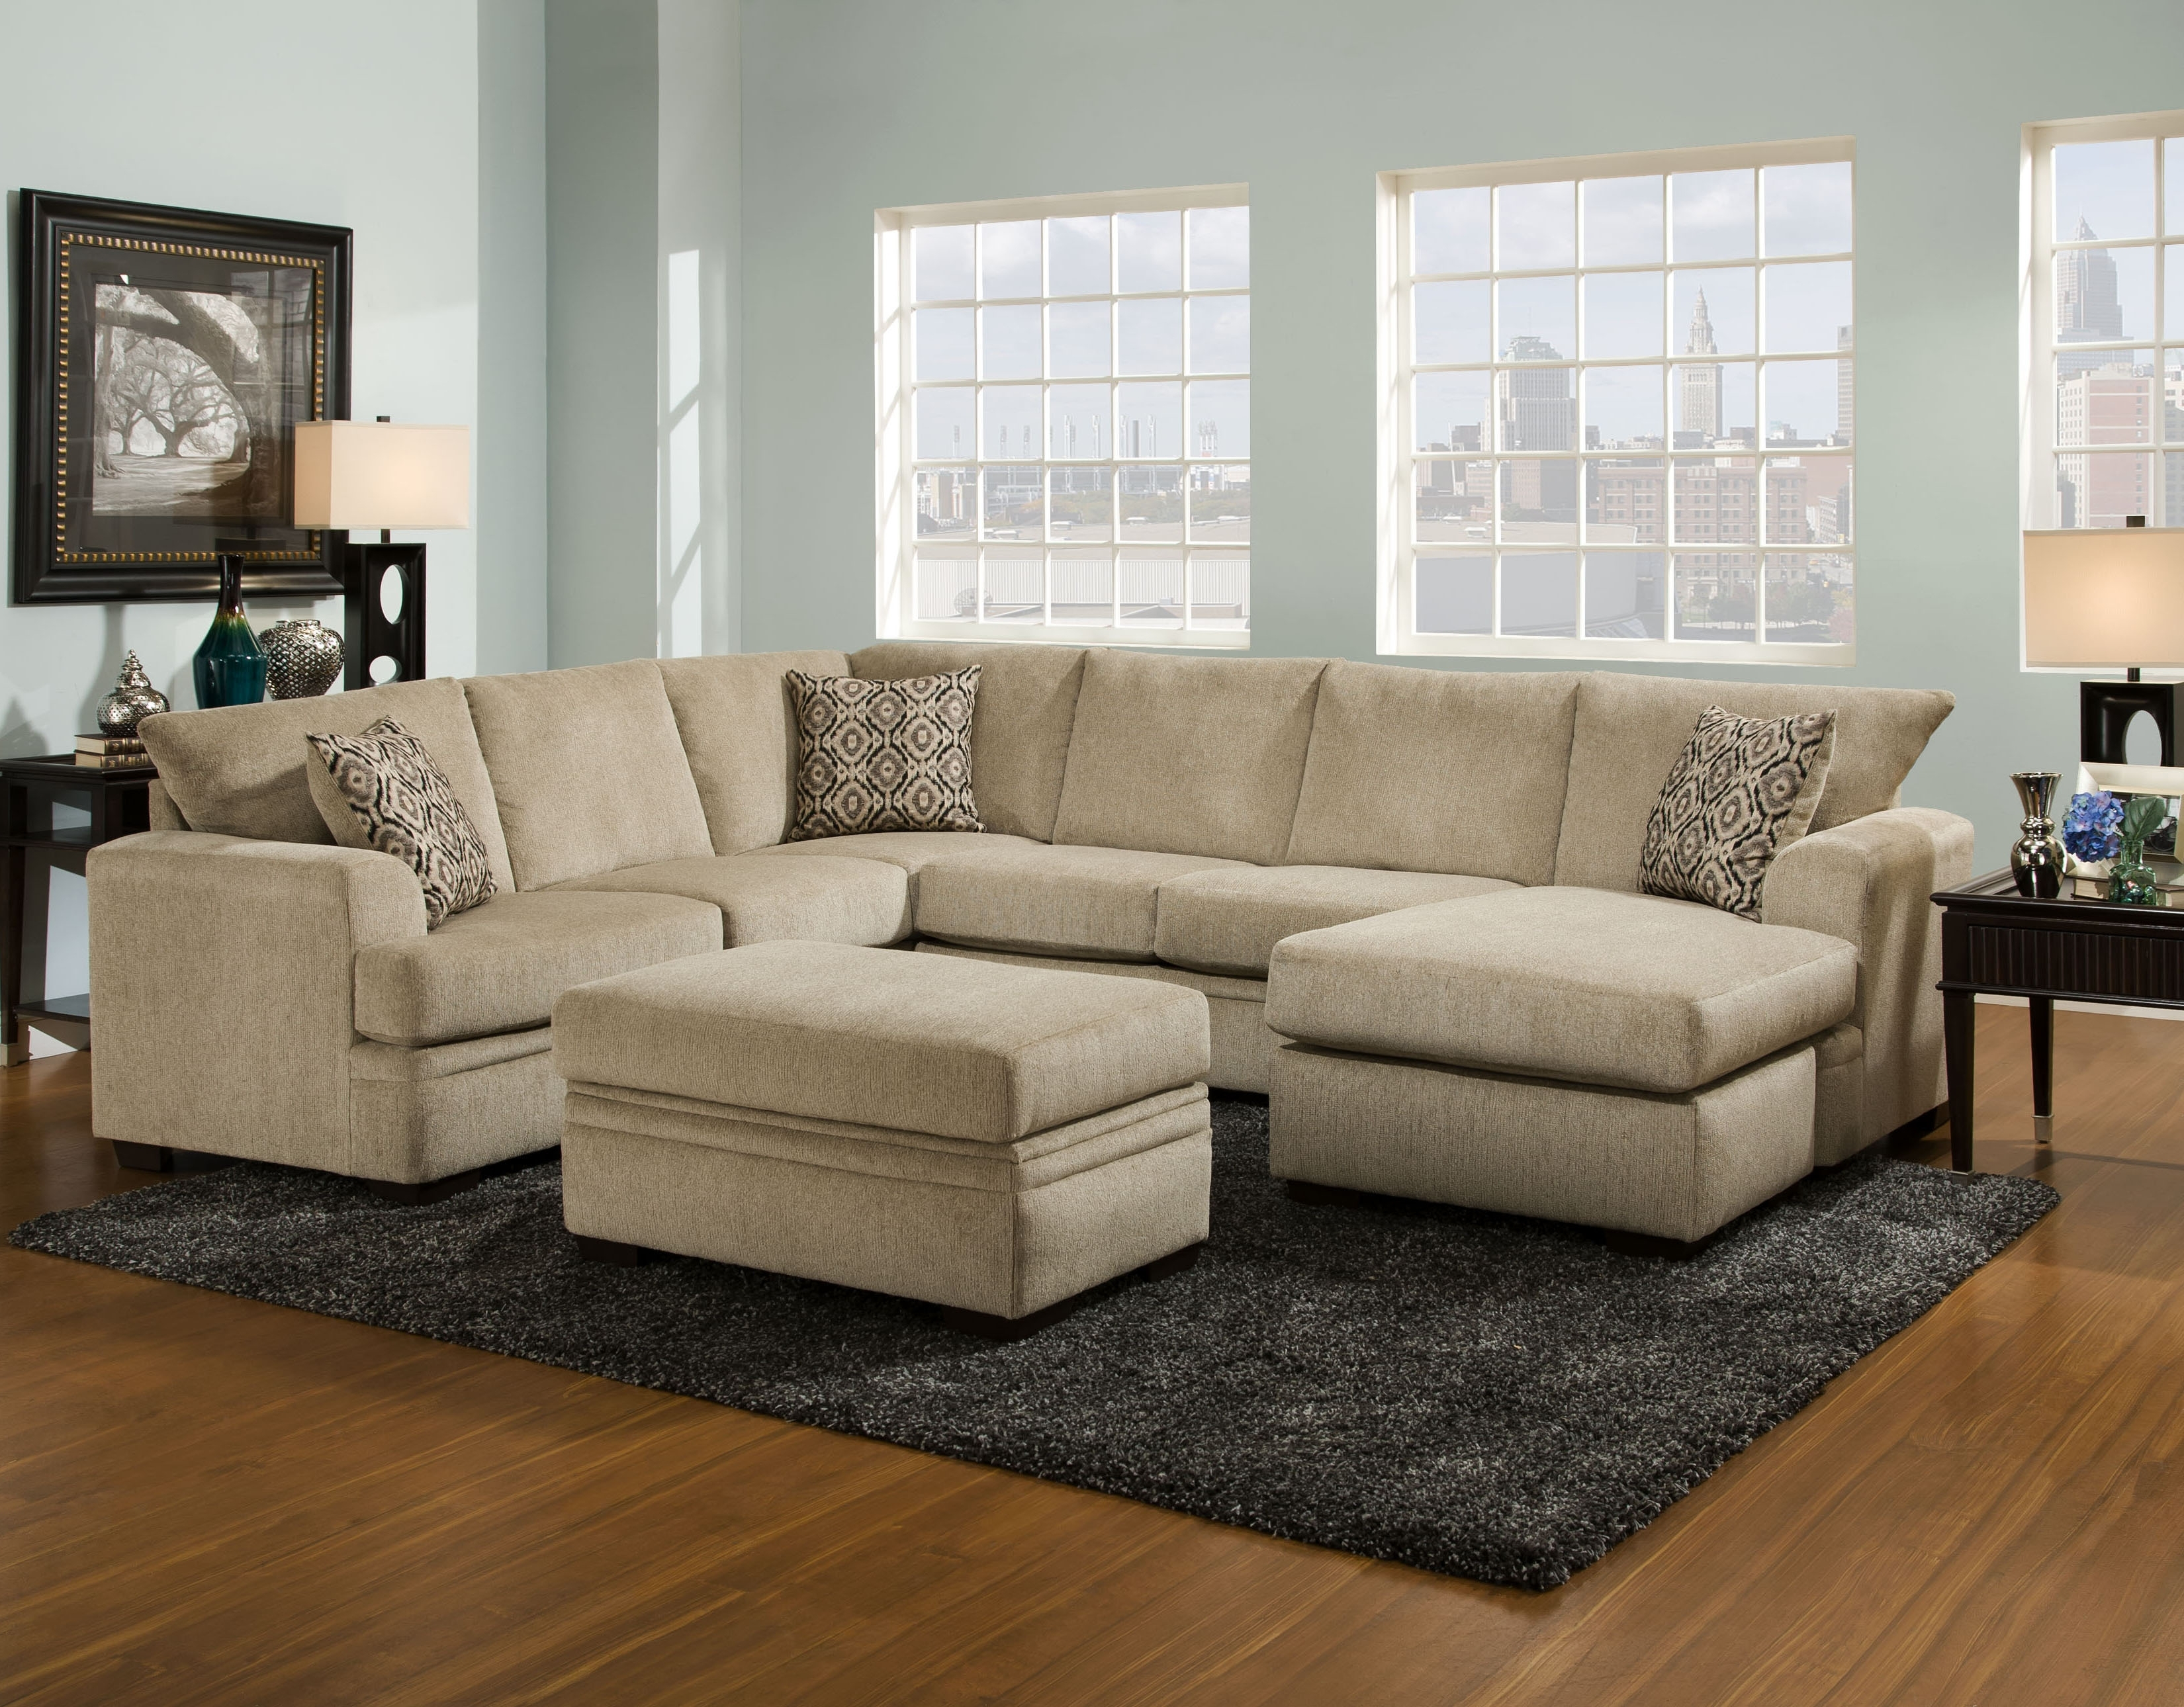 Sofa : Sofas For Small Spaces Fabric Sectionals With Recliners Inside Trendy Home Zone Sectional Sofas (View 18 of 20)